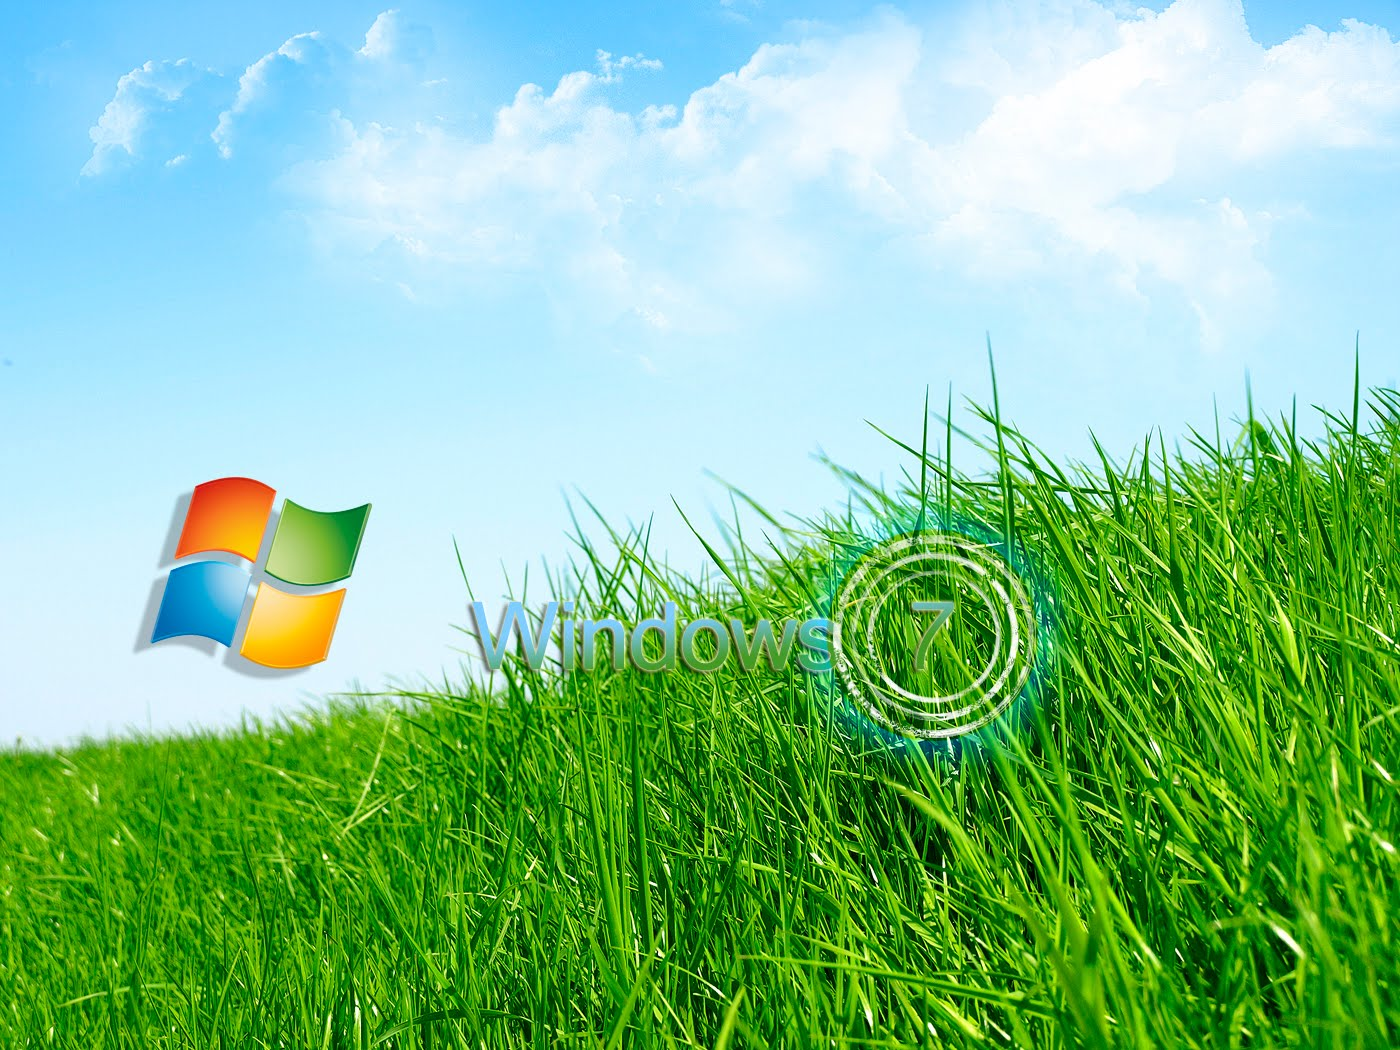 Free Download Wallpapers Windows 7 Grass Wallpapers 1400x1050